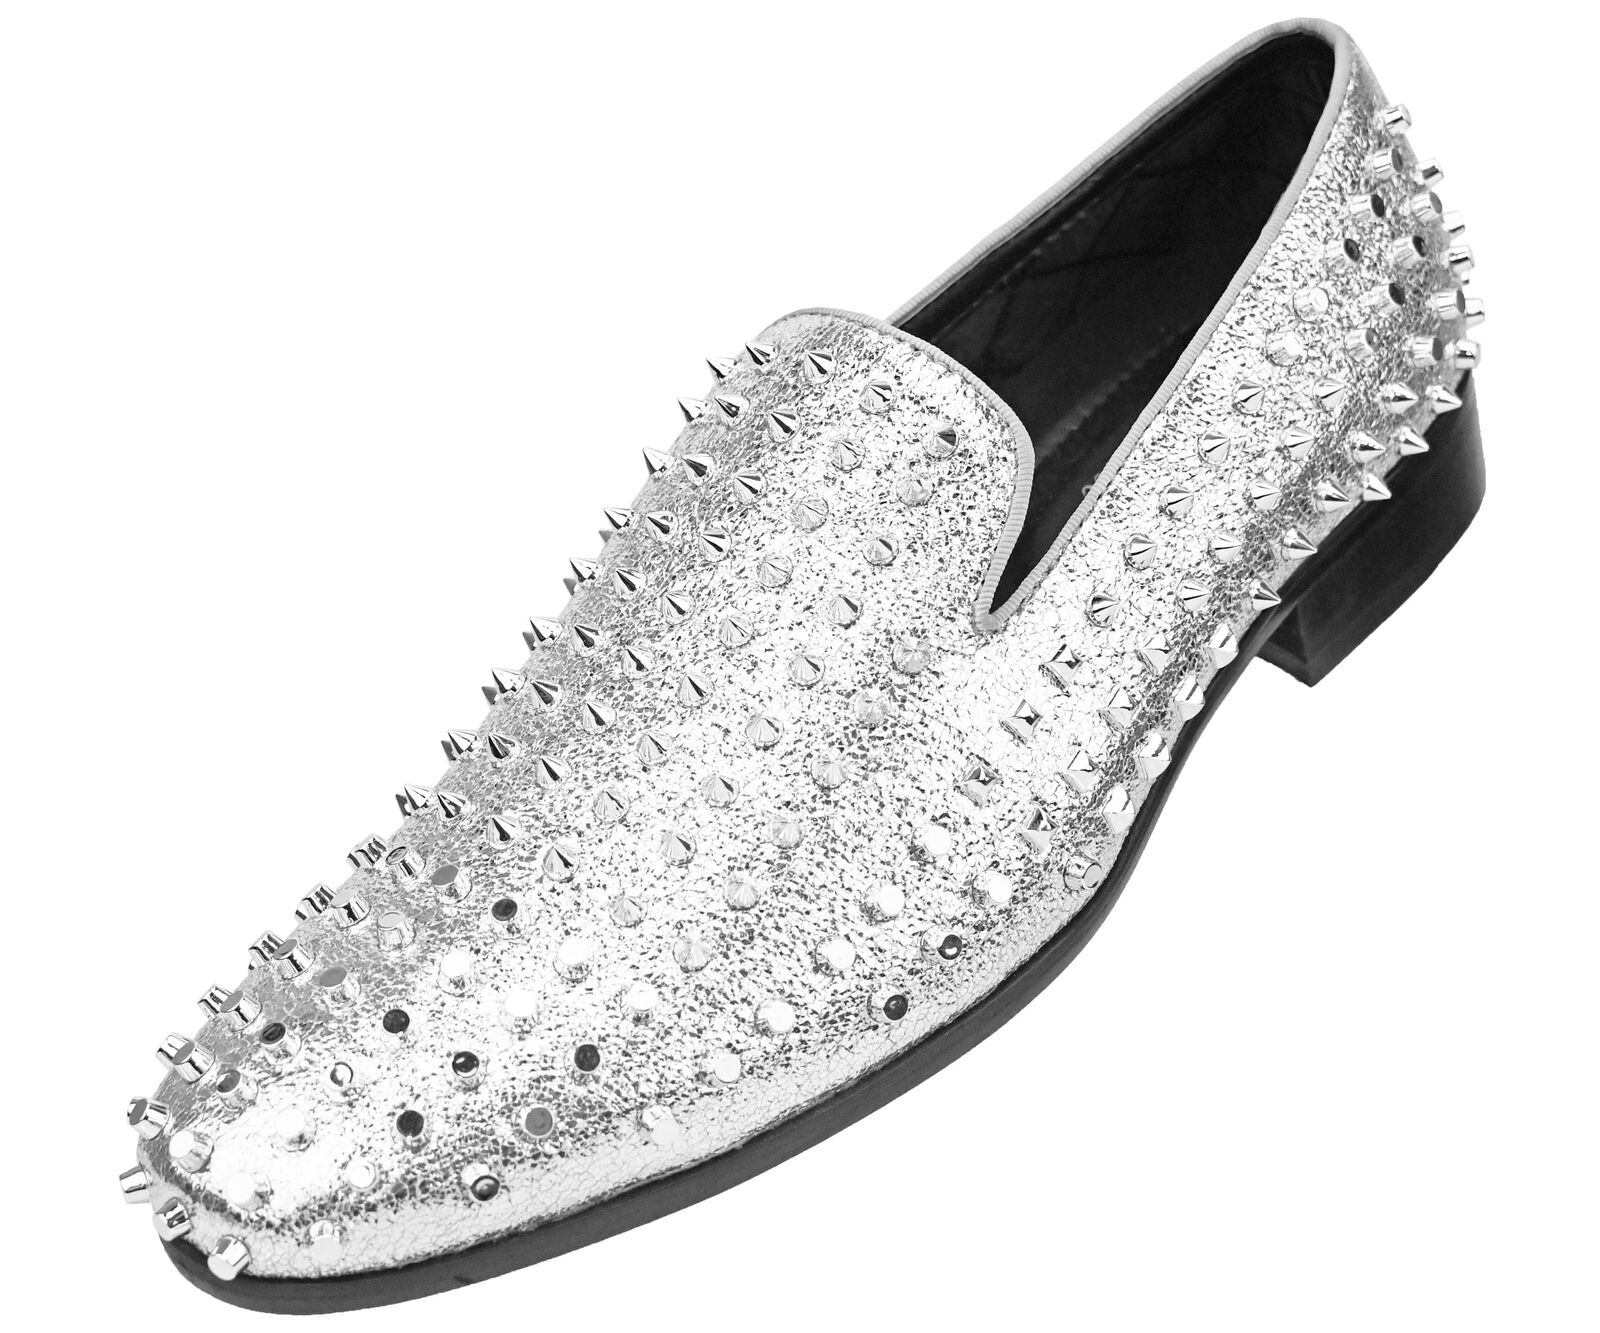 Amali Men's Lush Smoking Slipper with Spikes and Studs Loafer Slip-On Dress Shoe